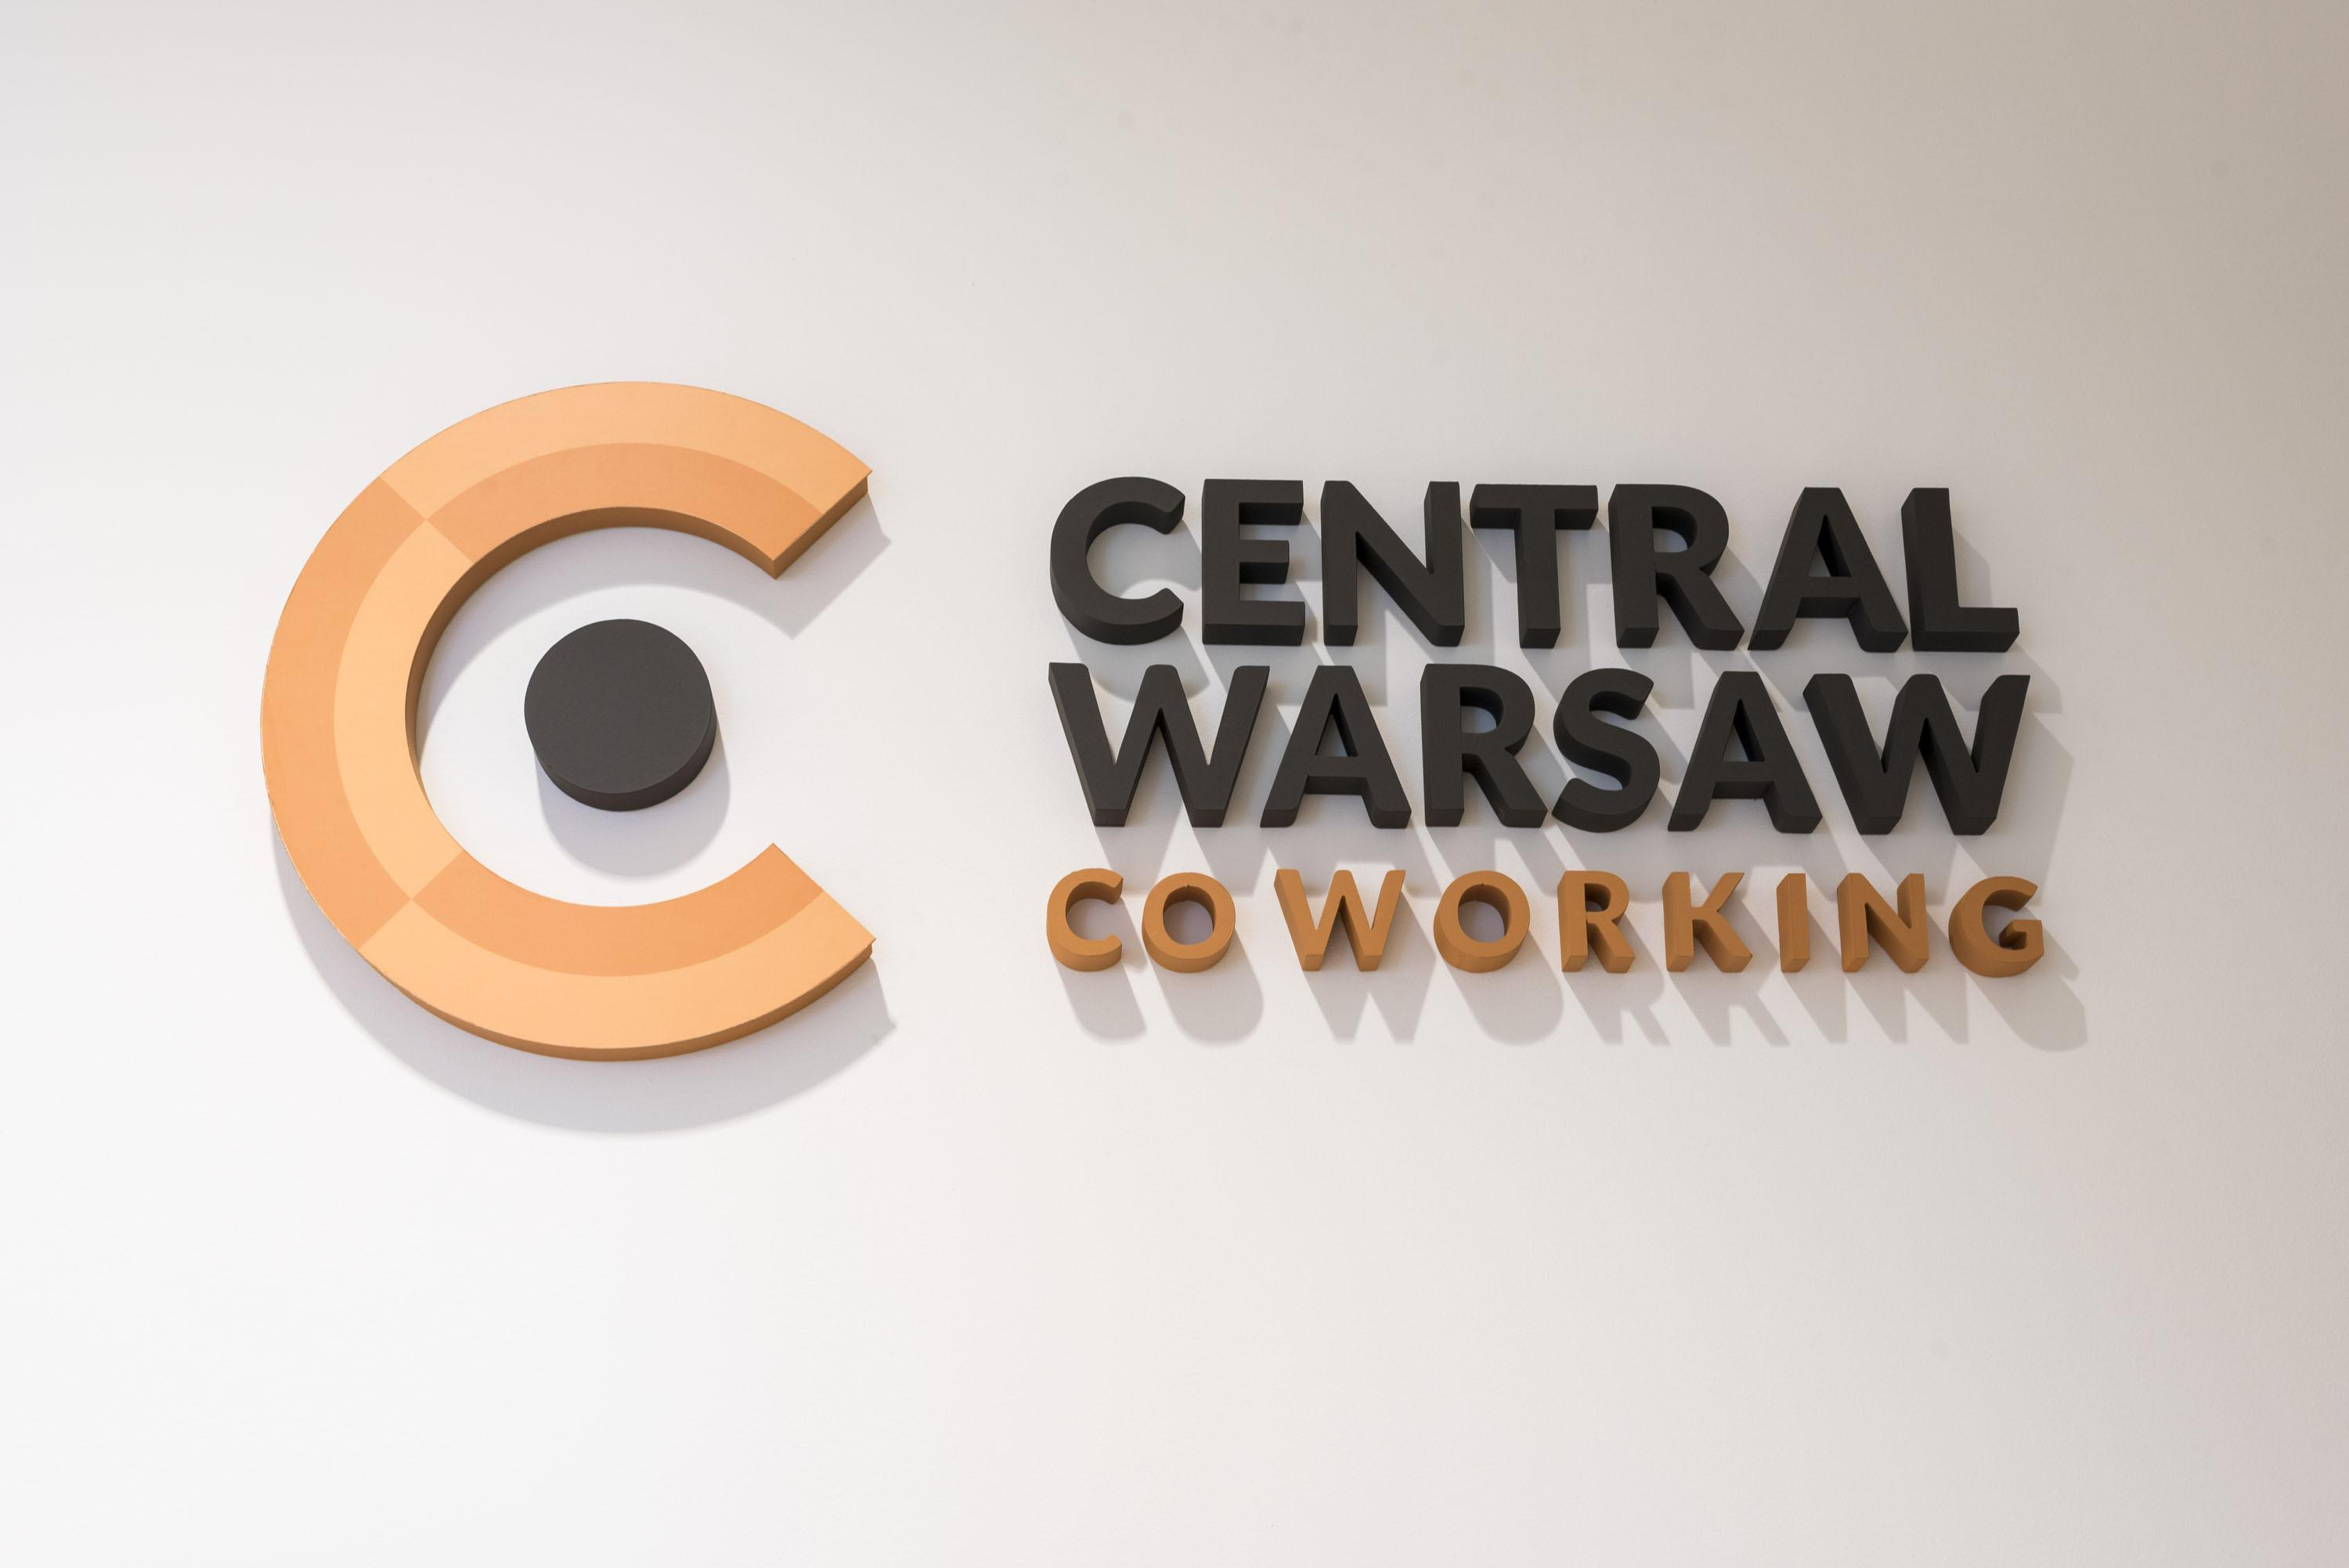 Central Warsaw Coworking